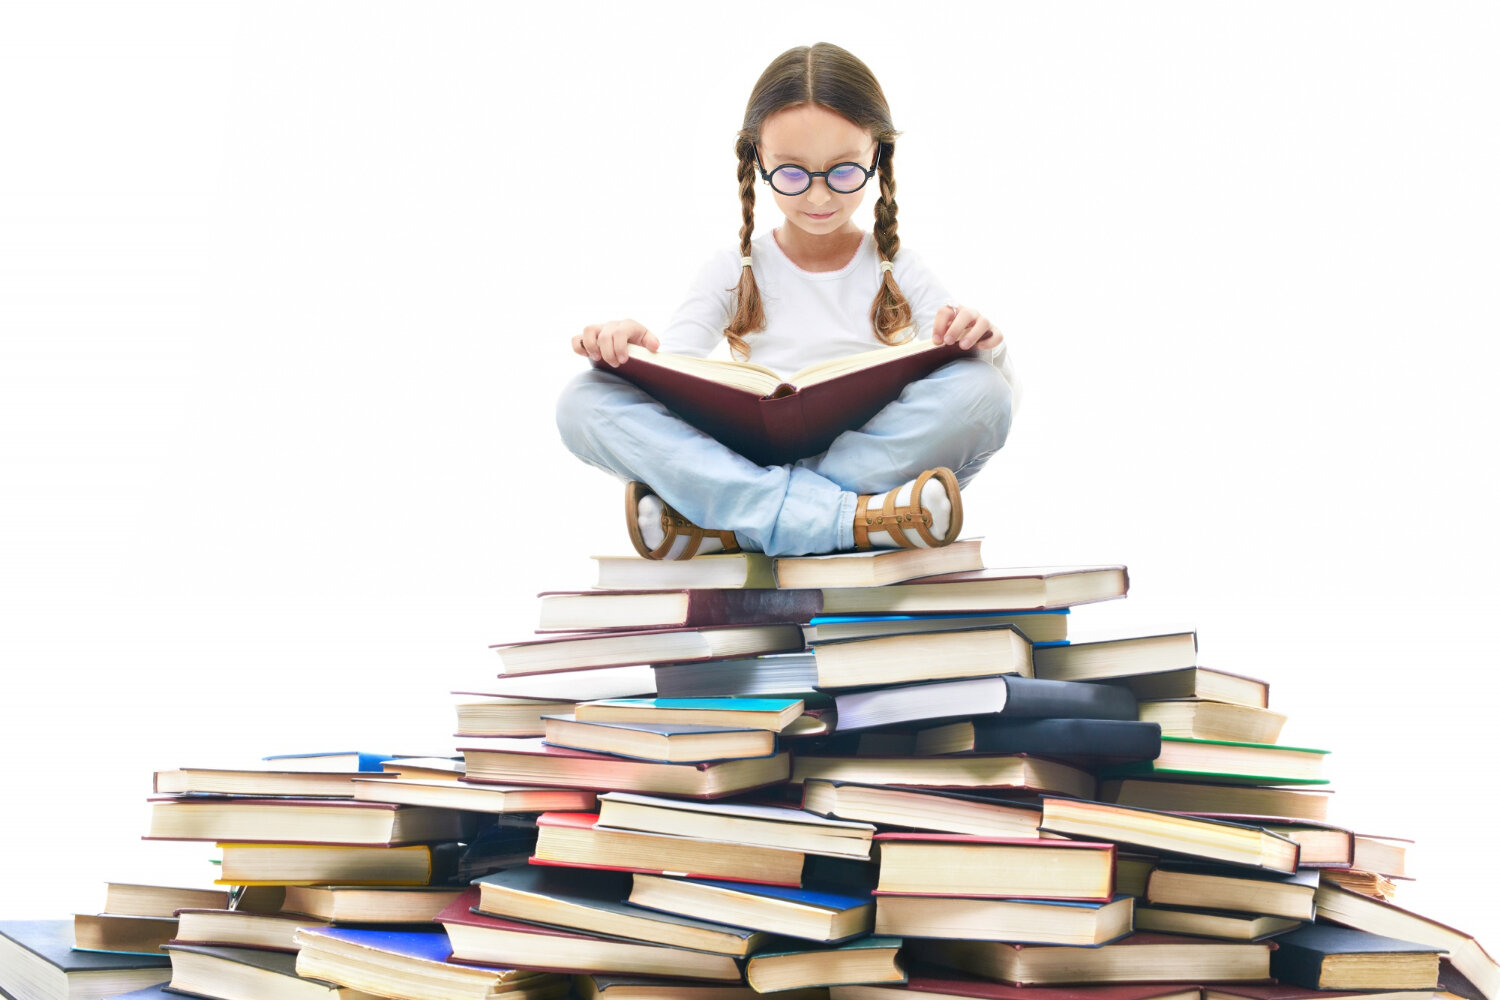 rsz_concentrated-girl-surrounded-by-books